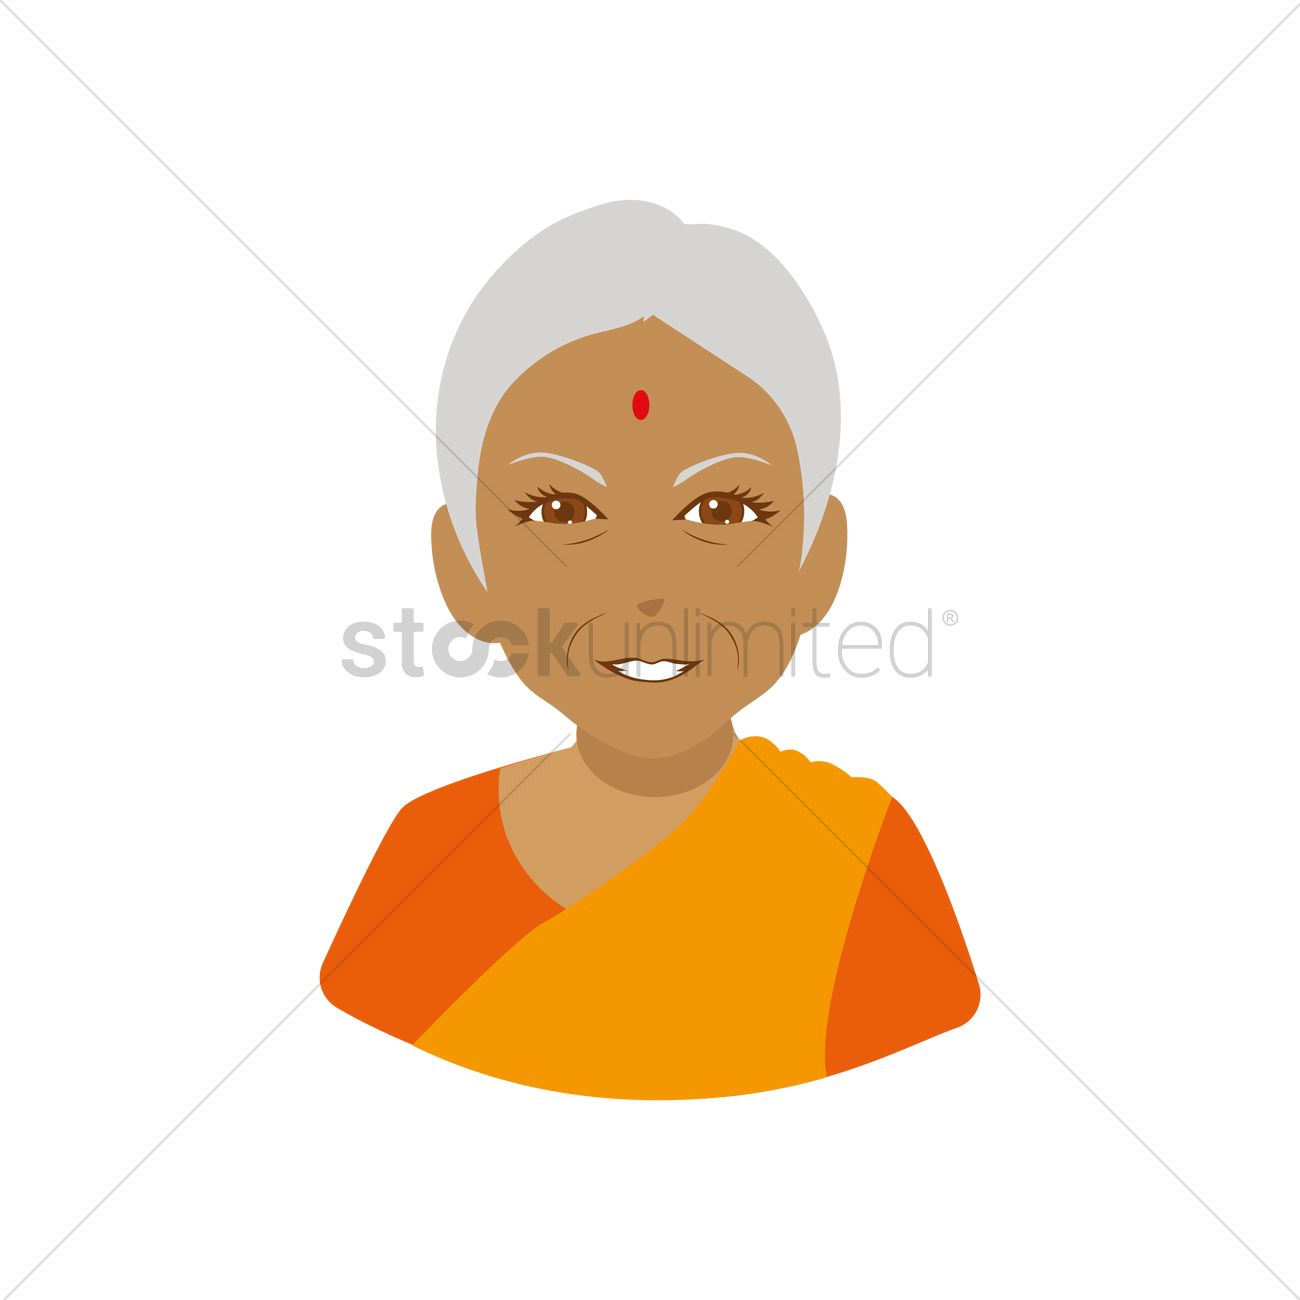 Woman from india clipart clip art download Traditional Indian Woman Indian Indians India Woman Women Lady ... clip art download